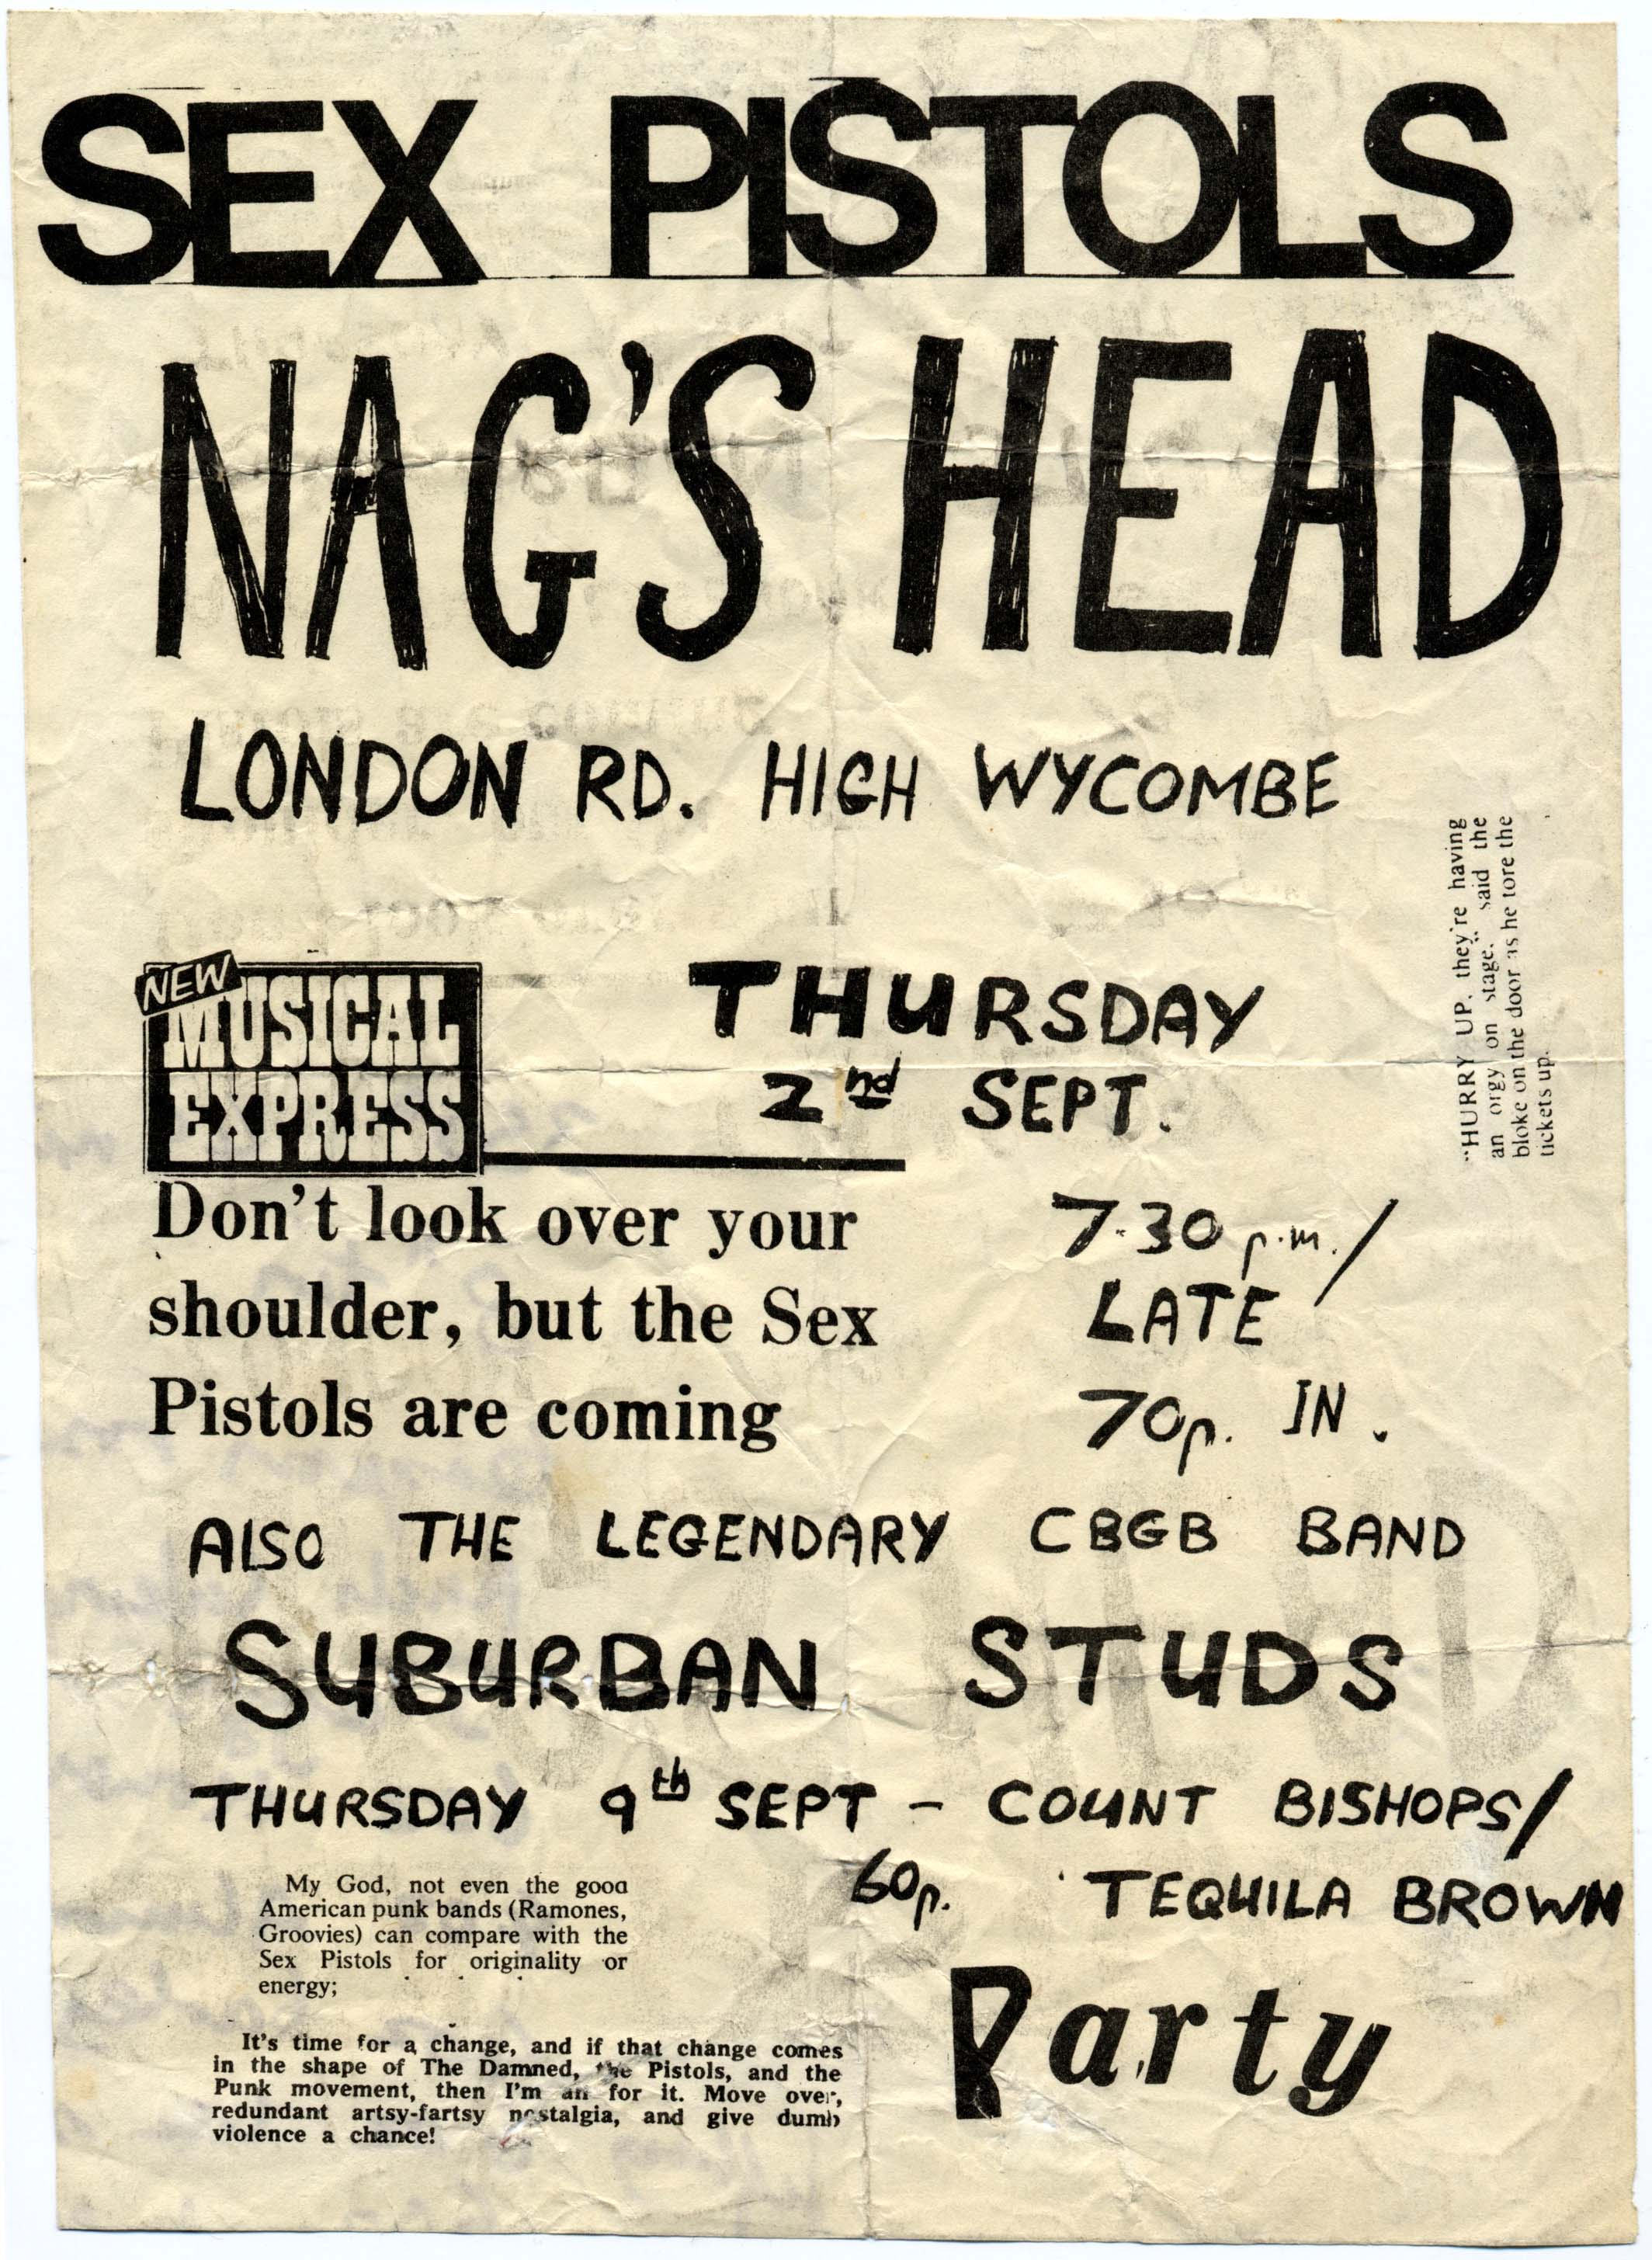 Nags Head, High Wycombe, September 2nd 1976 - Flyer